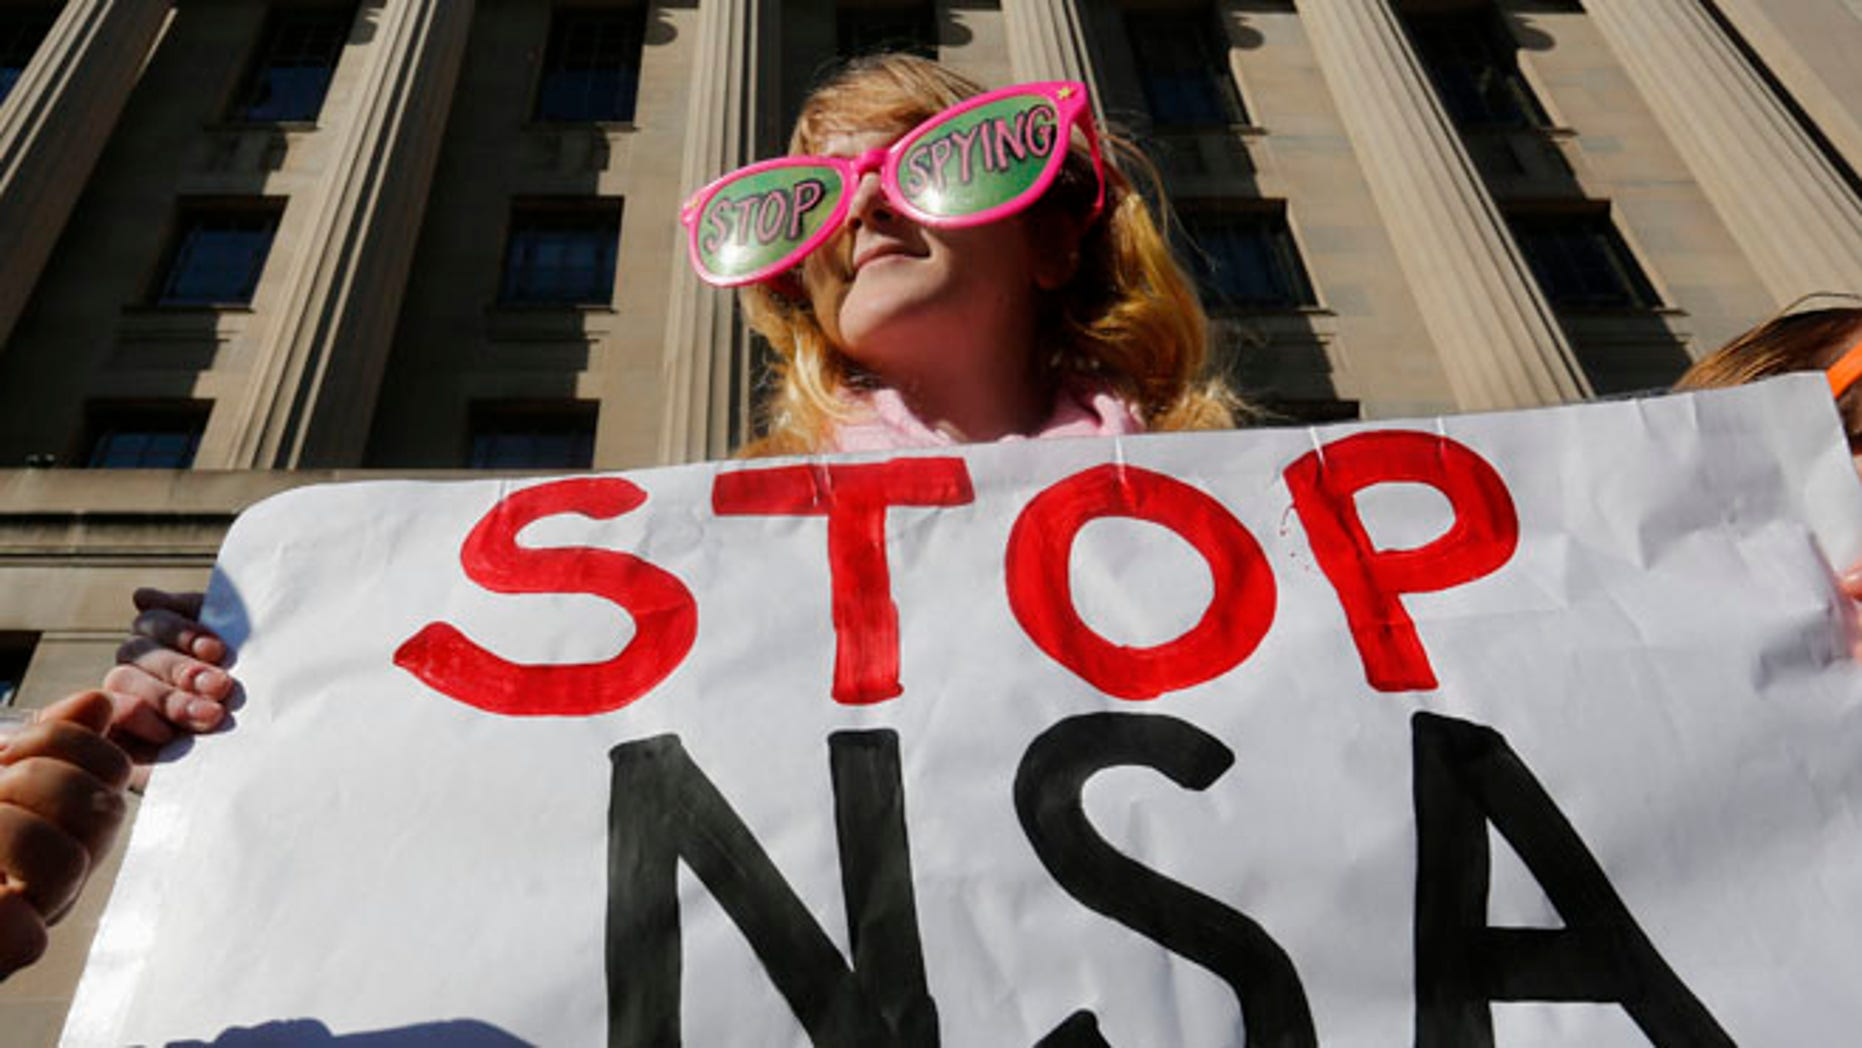 Jan. 17, 2014: Member of the protest group, Code Pink, protests against President Obama and the NSA.